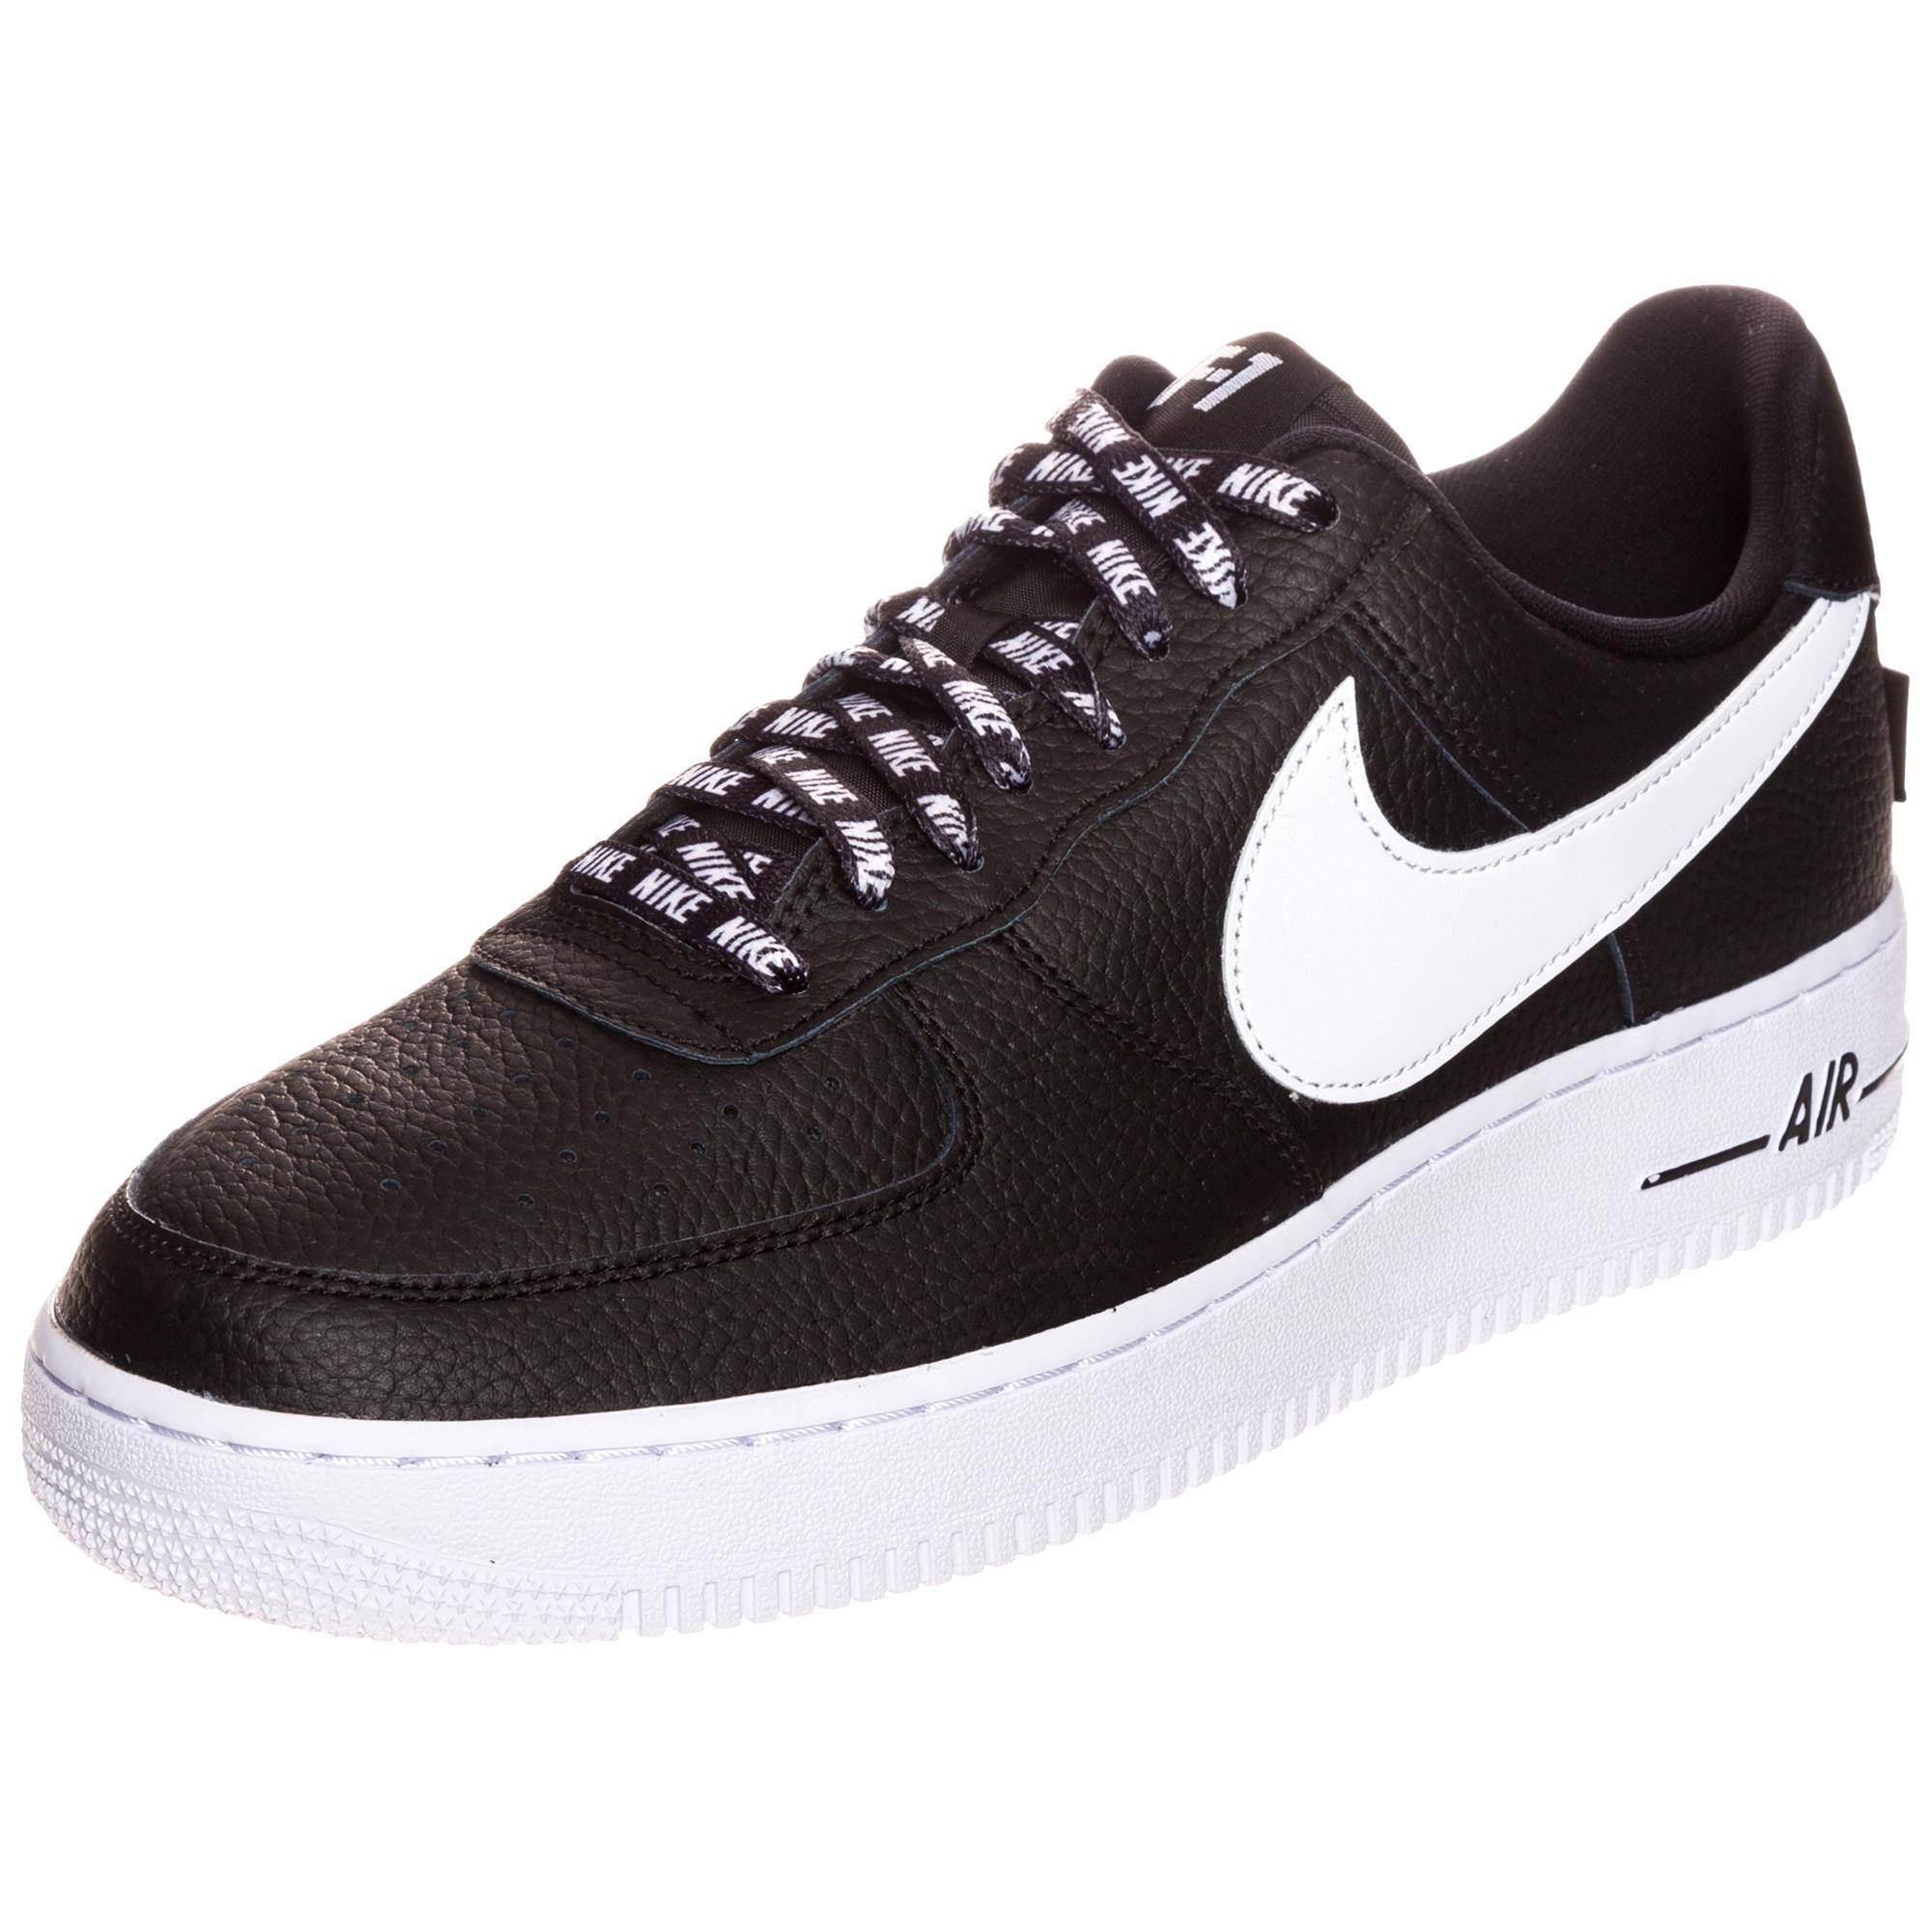 Nike Air Force 1 Low 07 NBA Sneaker Herren schwarz / weiß im Online ...